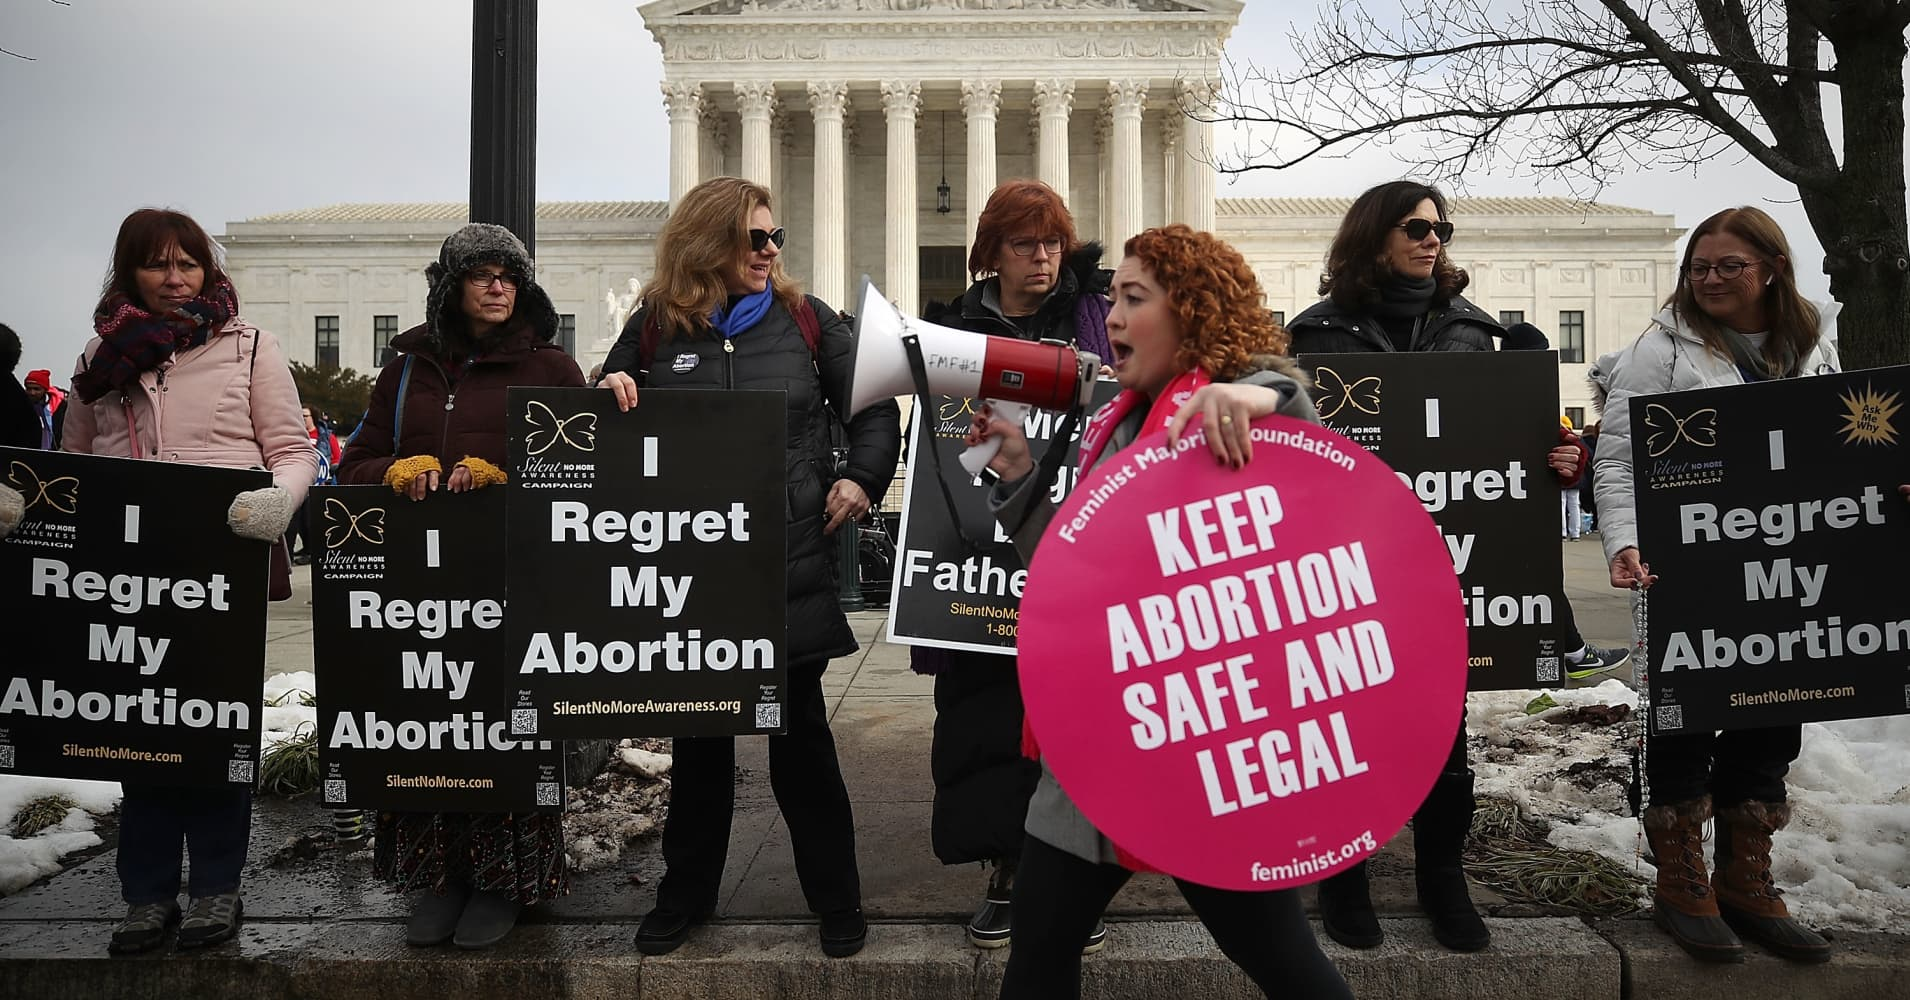 US Supreme Court blocks strict Louisiana abortion law